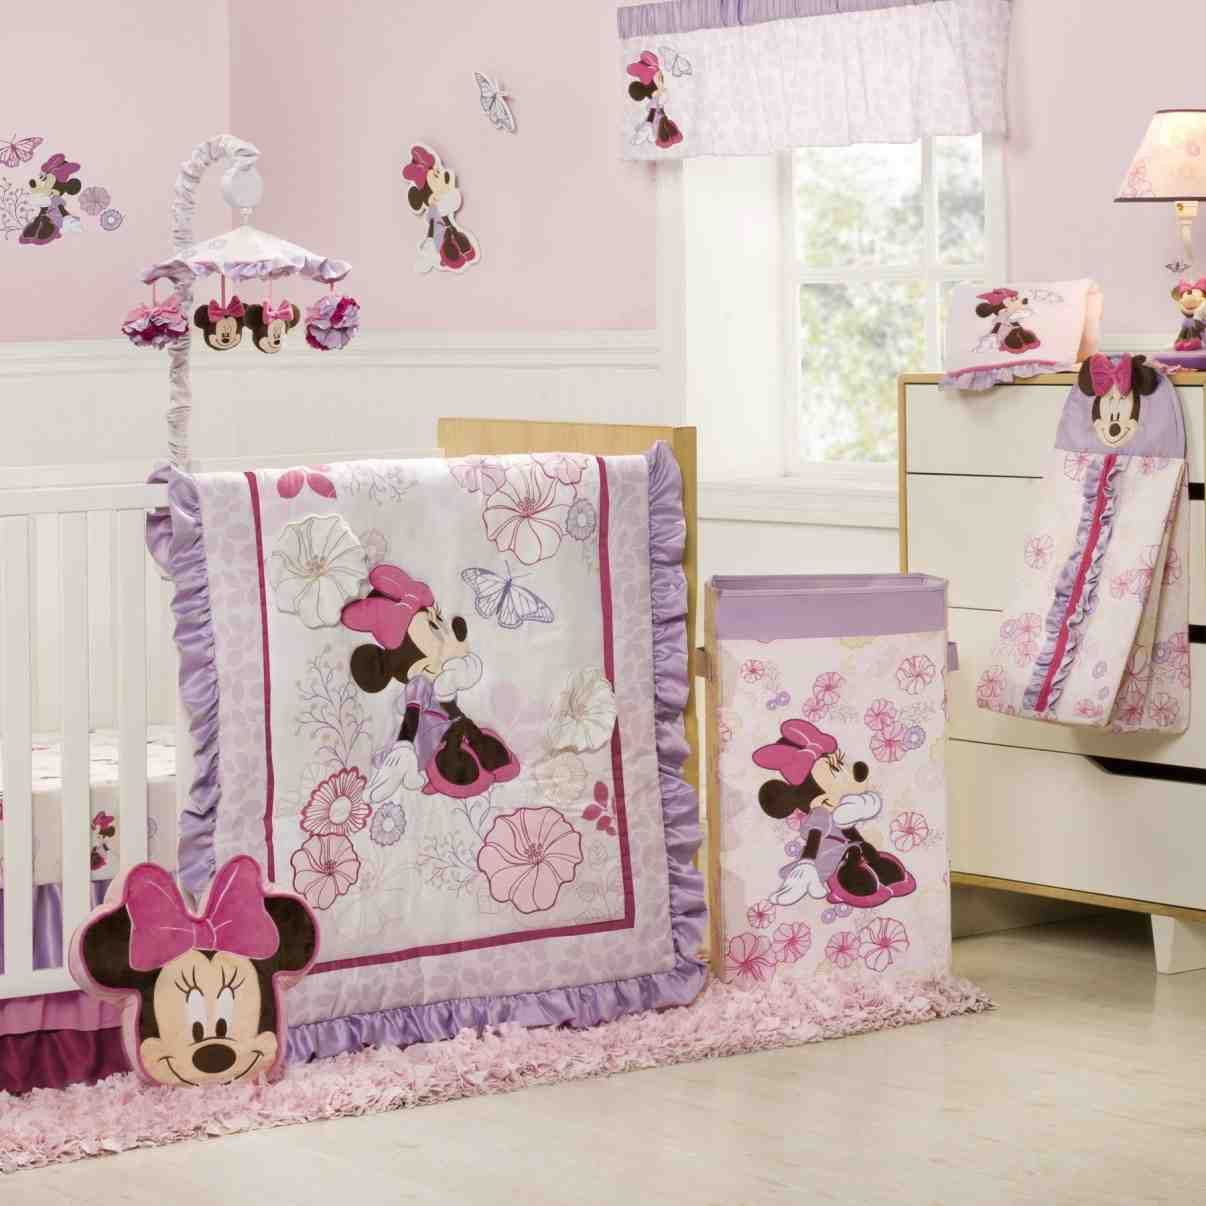 Minnie Mouse Baby Room Decor Baby Room Decor Minnie Mouse Baby